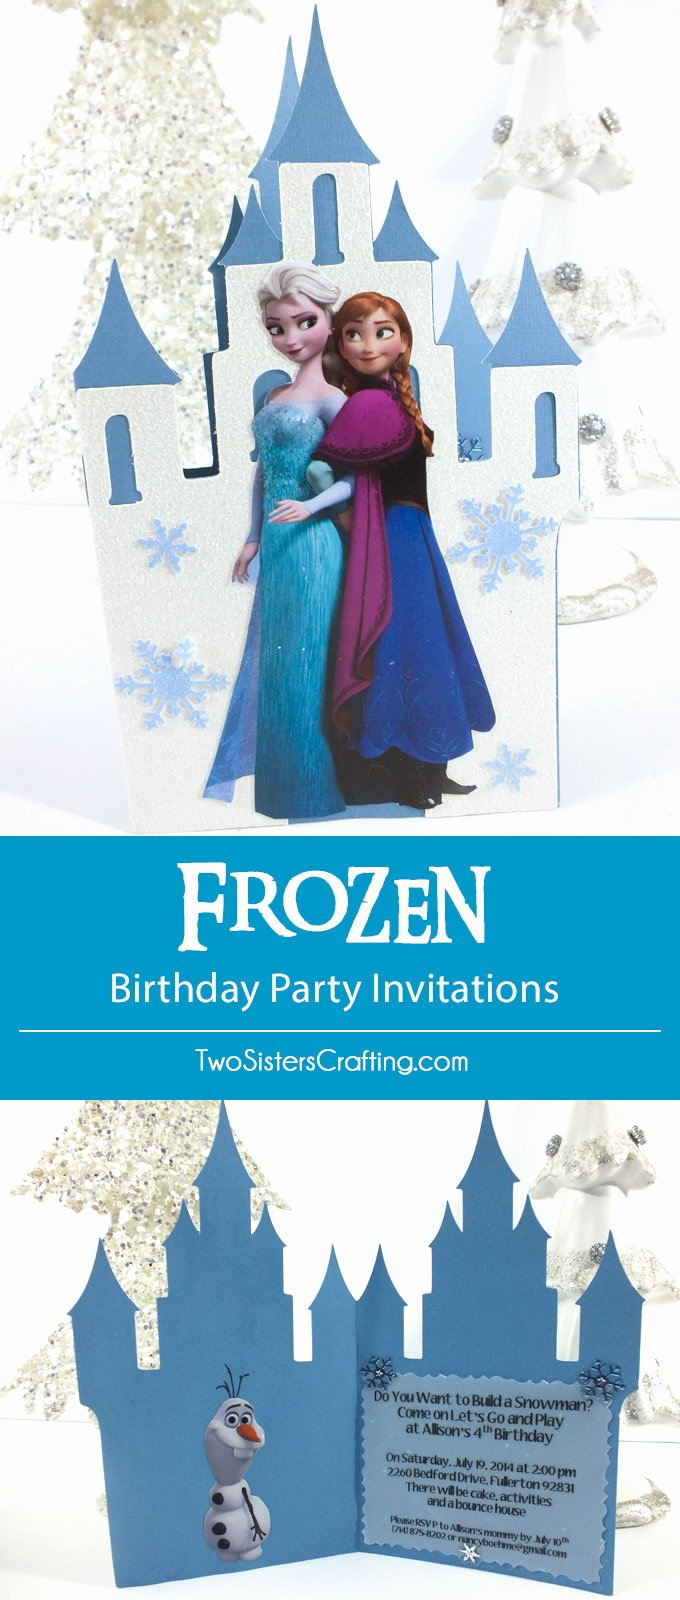 Frozen Birthday Invitations Cards Fresh Frozen Birthday Party Invitations Two Sisters